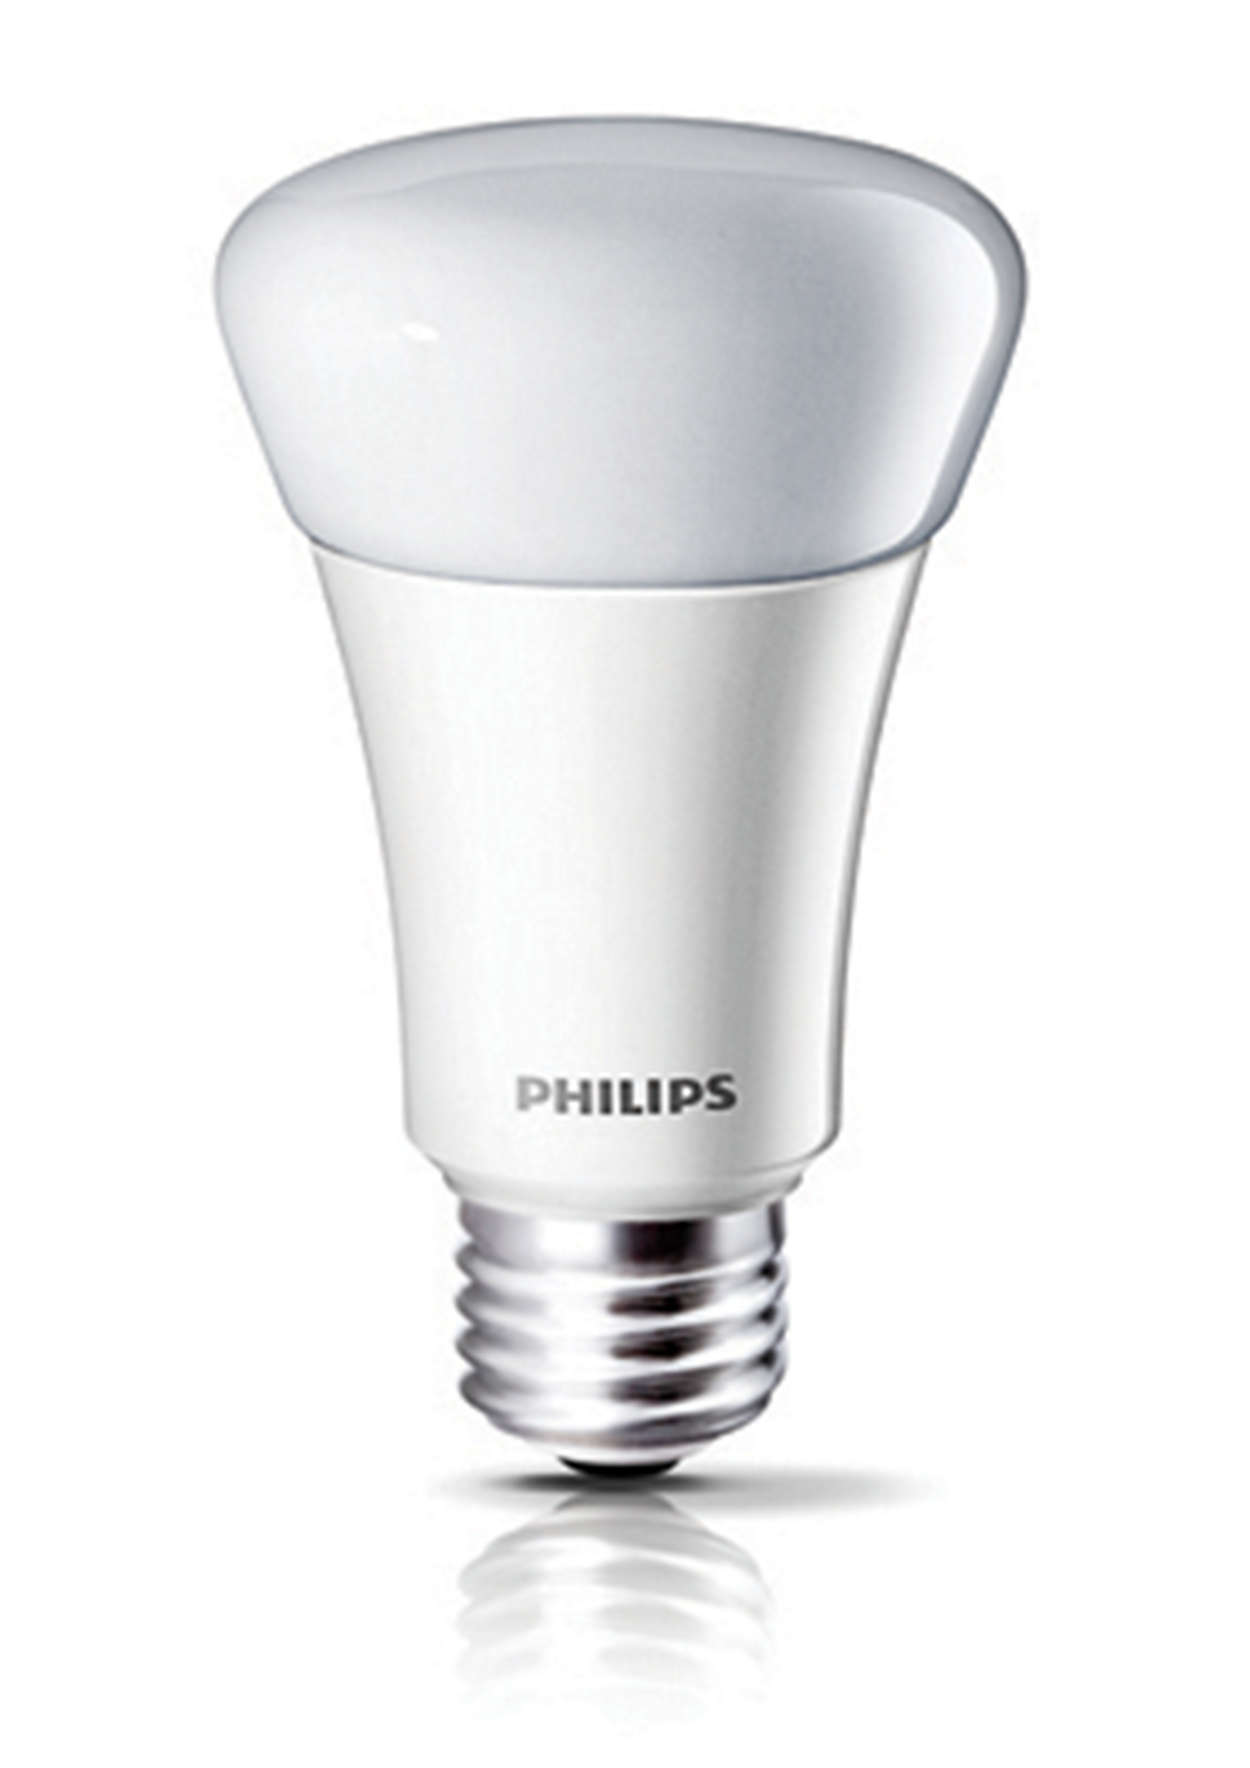 A19 Led Light Bulbs: Experience dimmable, warm white LED light,Lighting